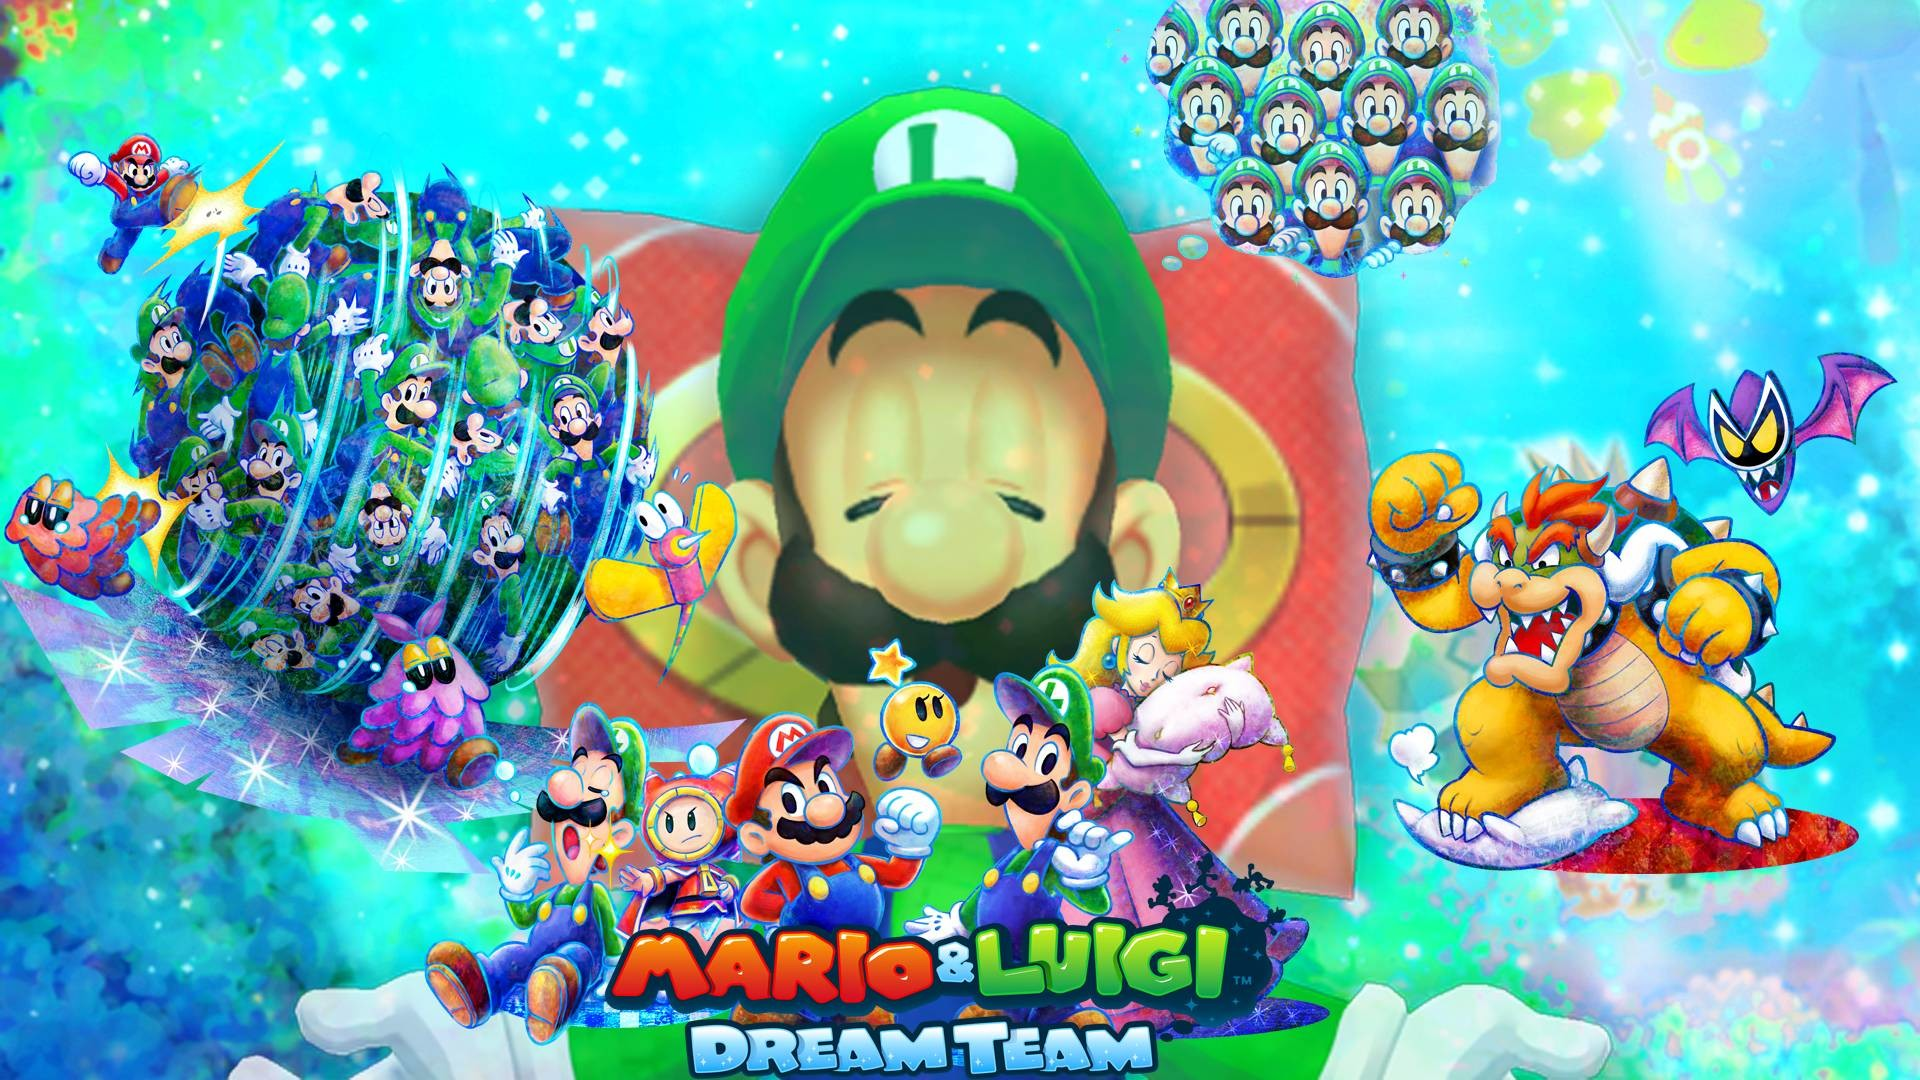 Mario And Luigi Backgrounds 54 Images